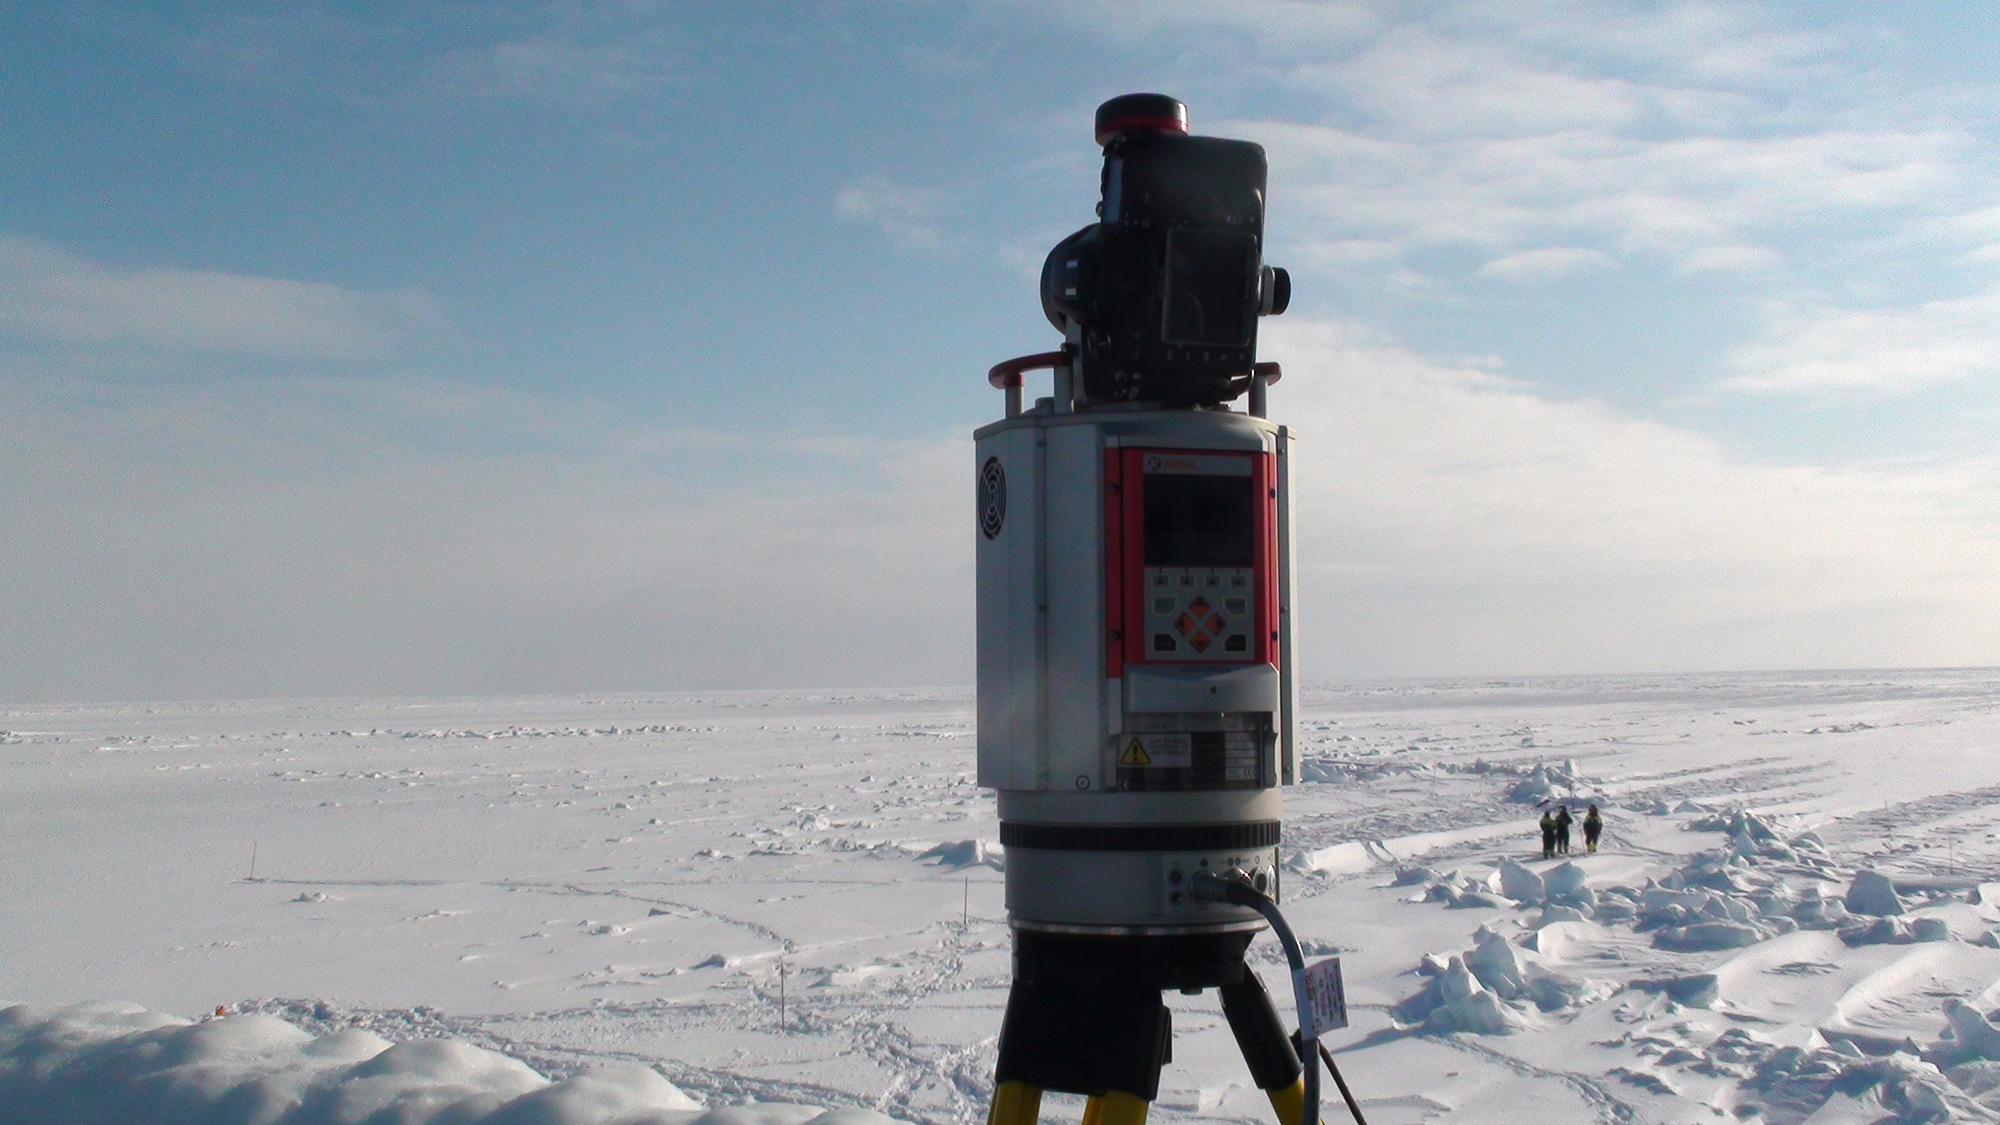 Laser scanning of ice ridges in Svalbard.